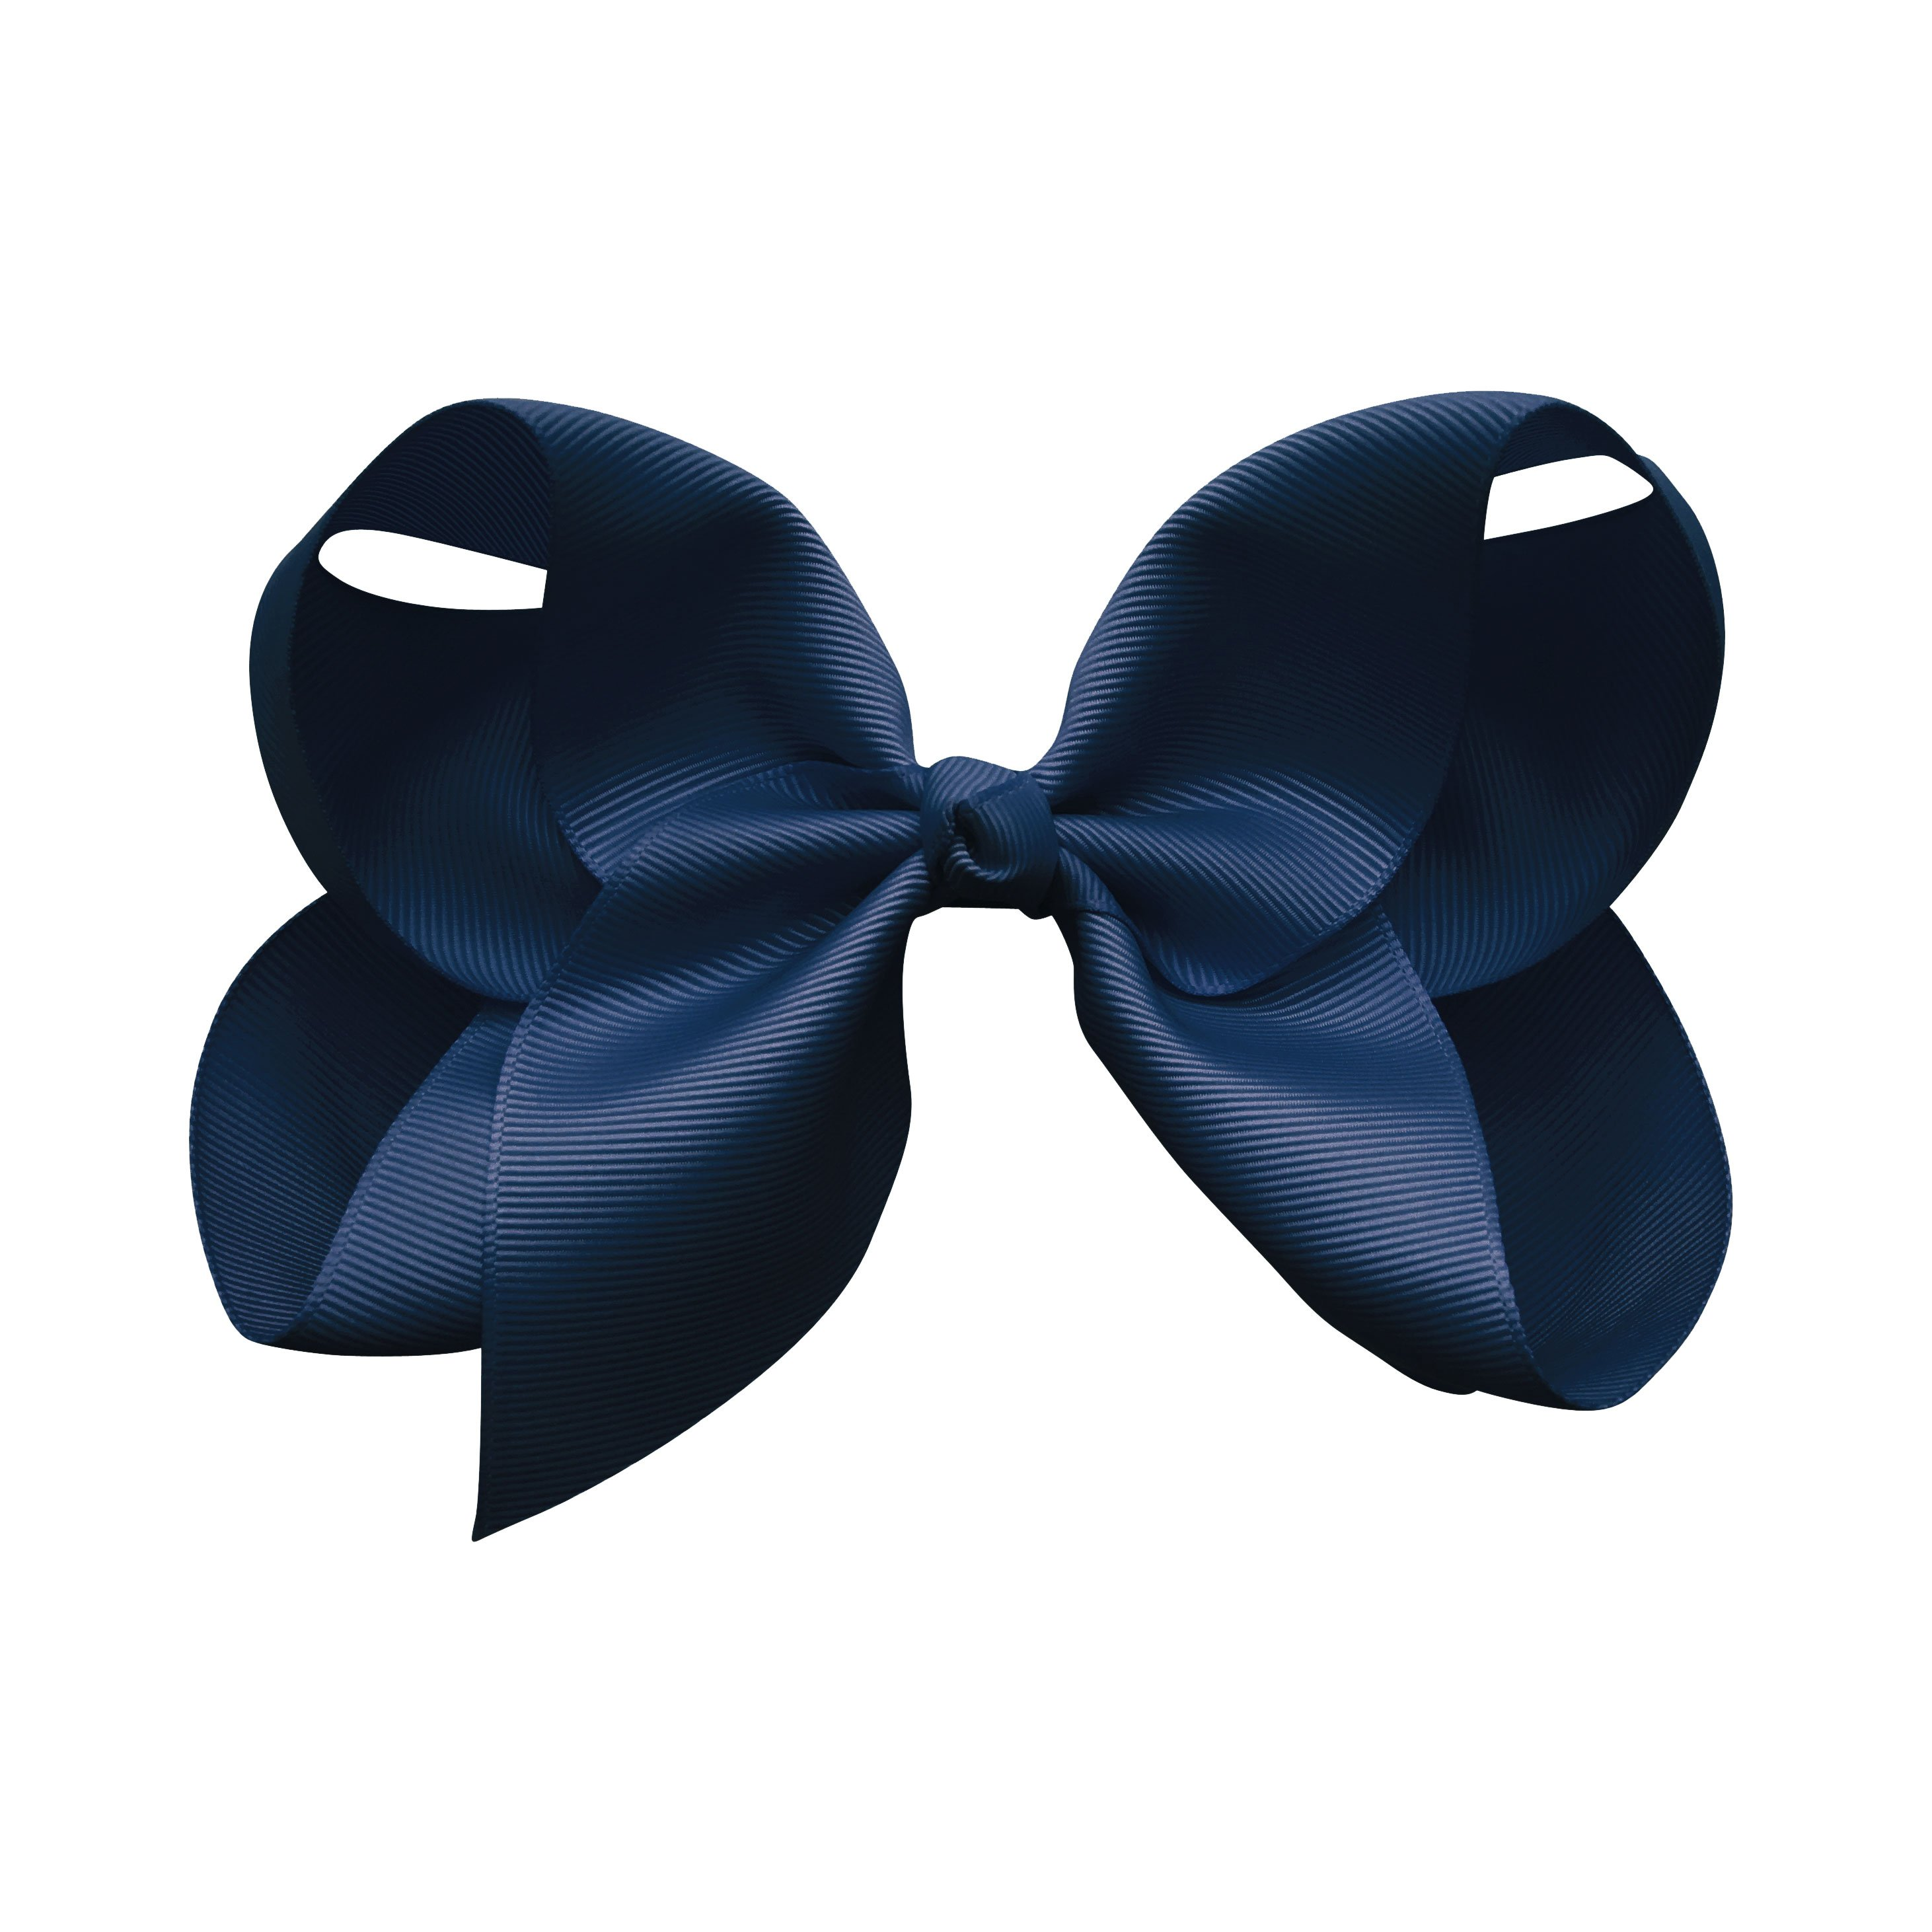 Image of Jumbo Boutique Bow - alligator clip - navy